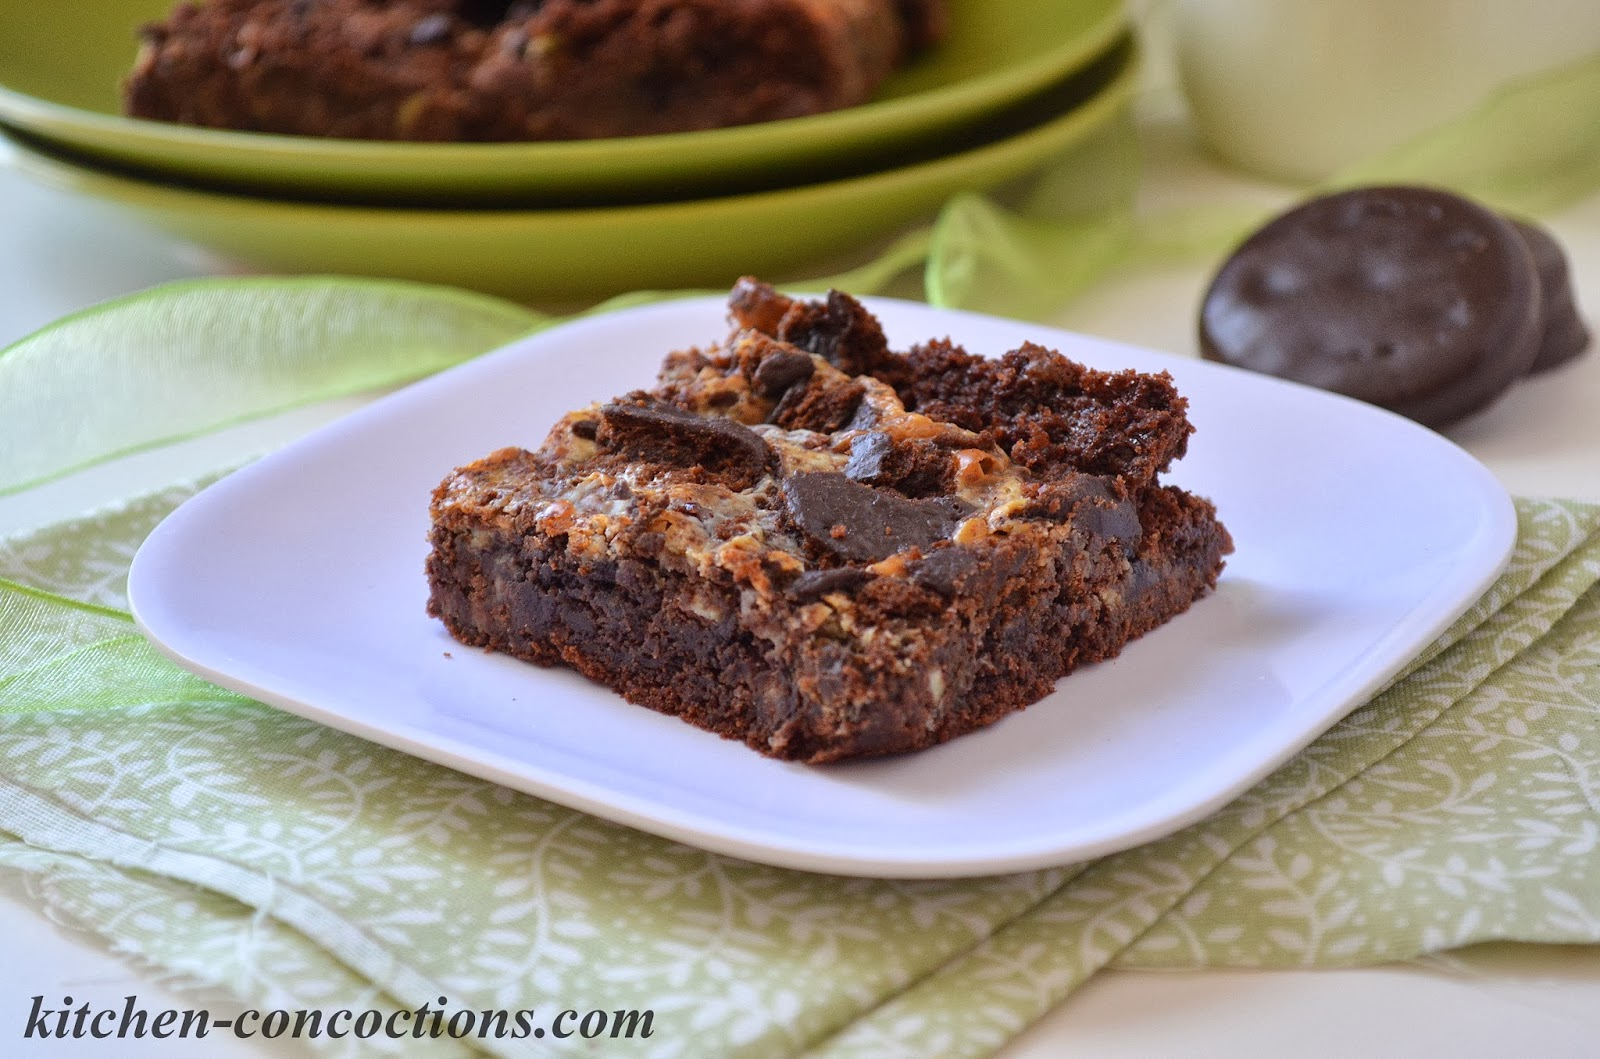 Kitchen Concoctions: Thin Mint Gooey Cake Bars